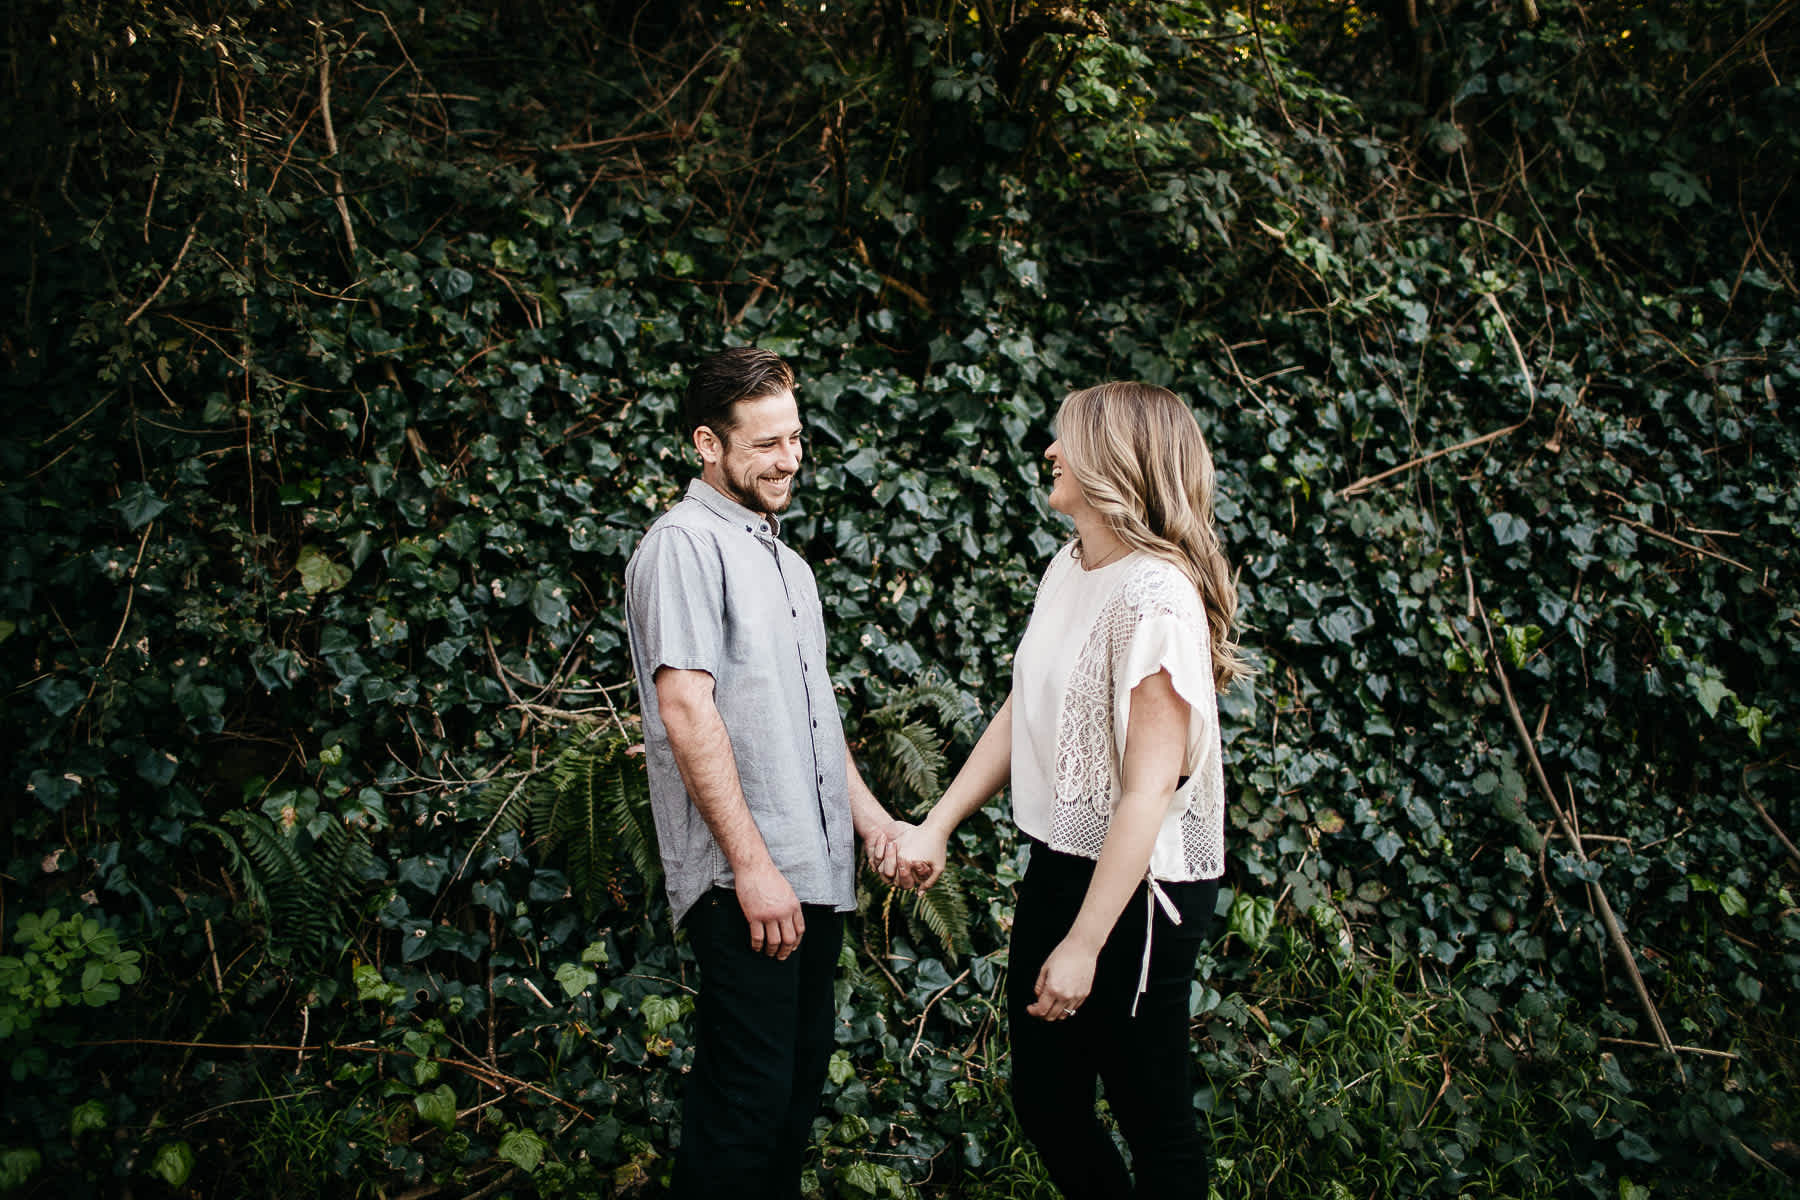 fort-funston-engagement-session-sunset-fun-beach-session-6